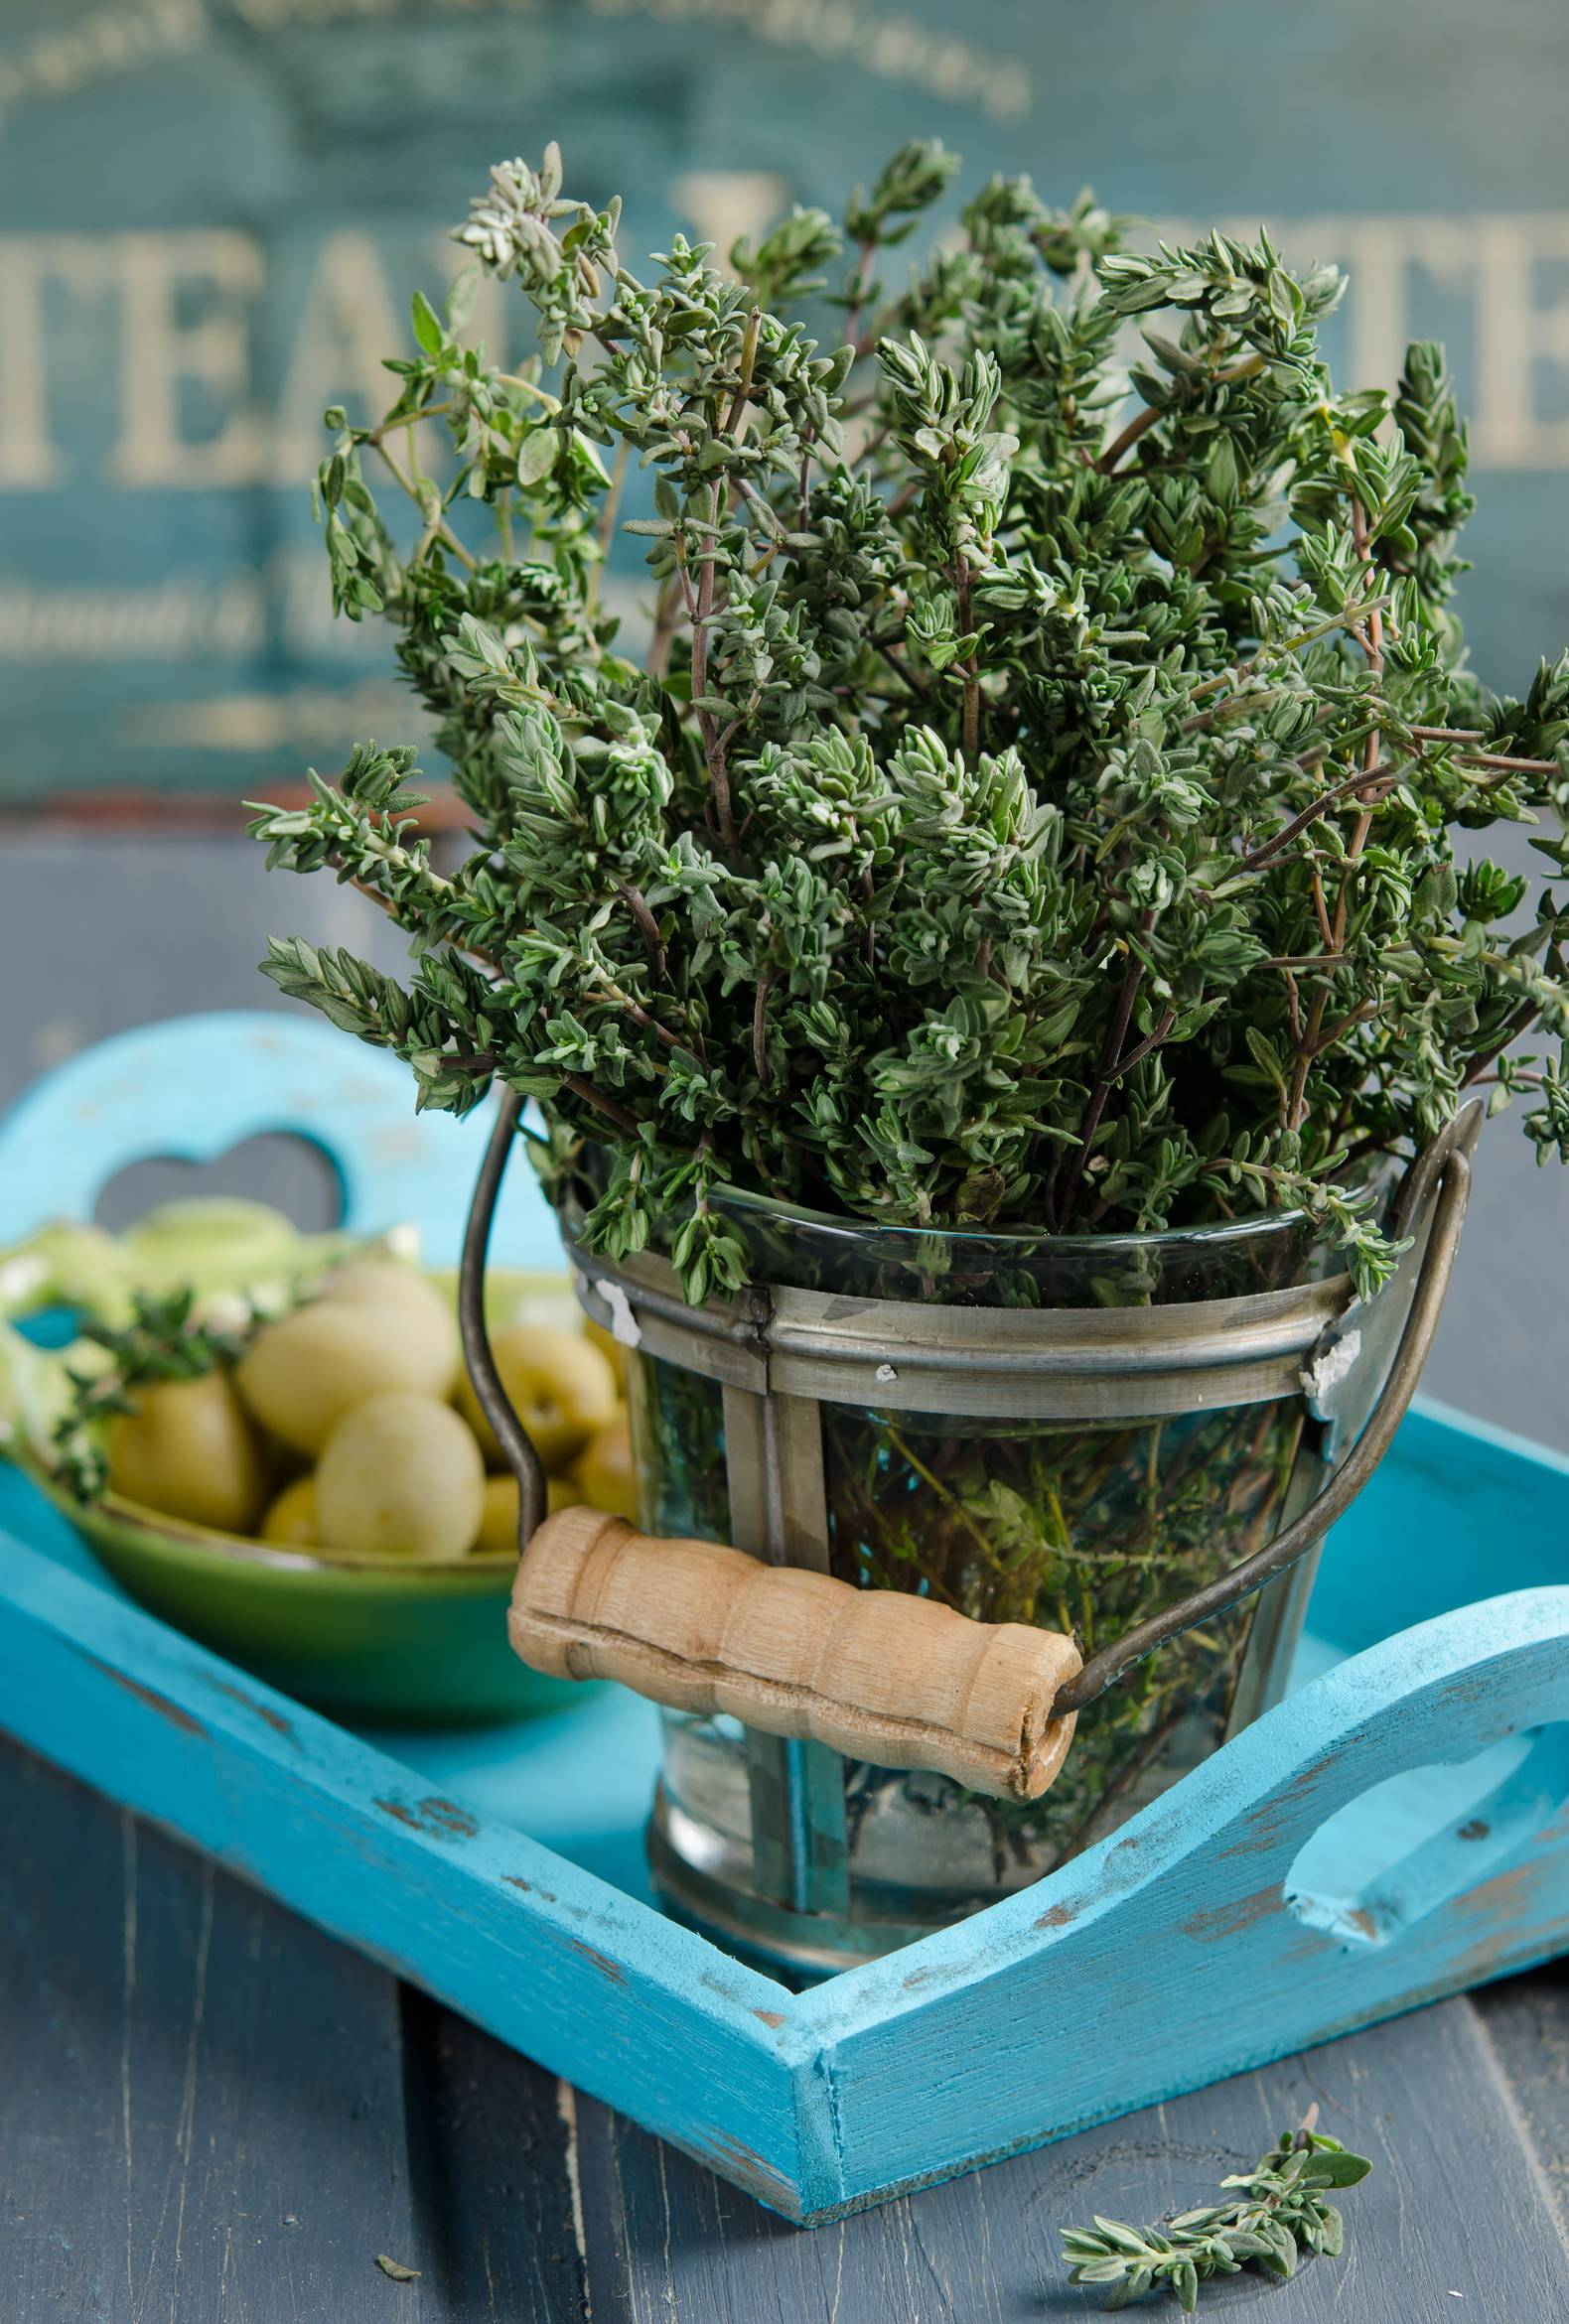 Thyme herb plant in a vase